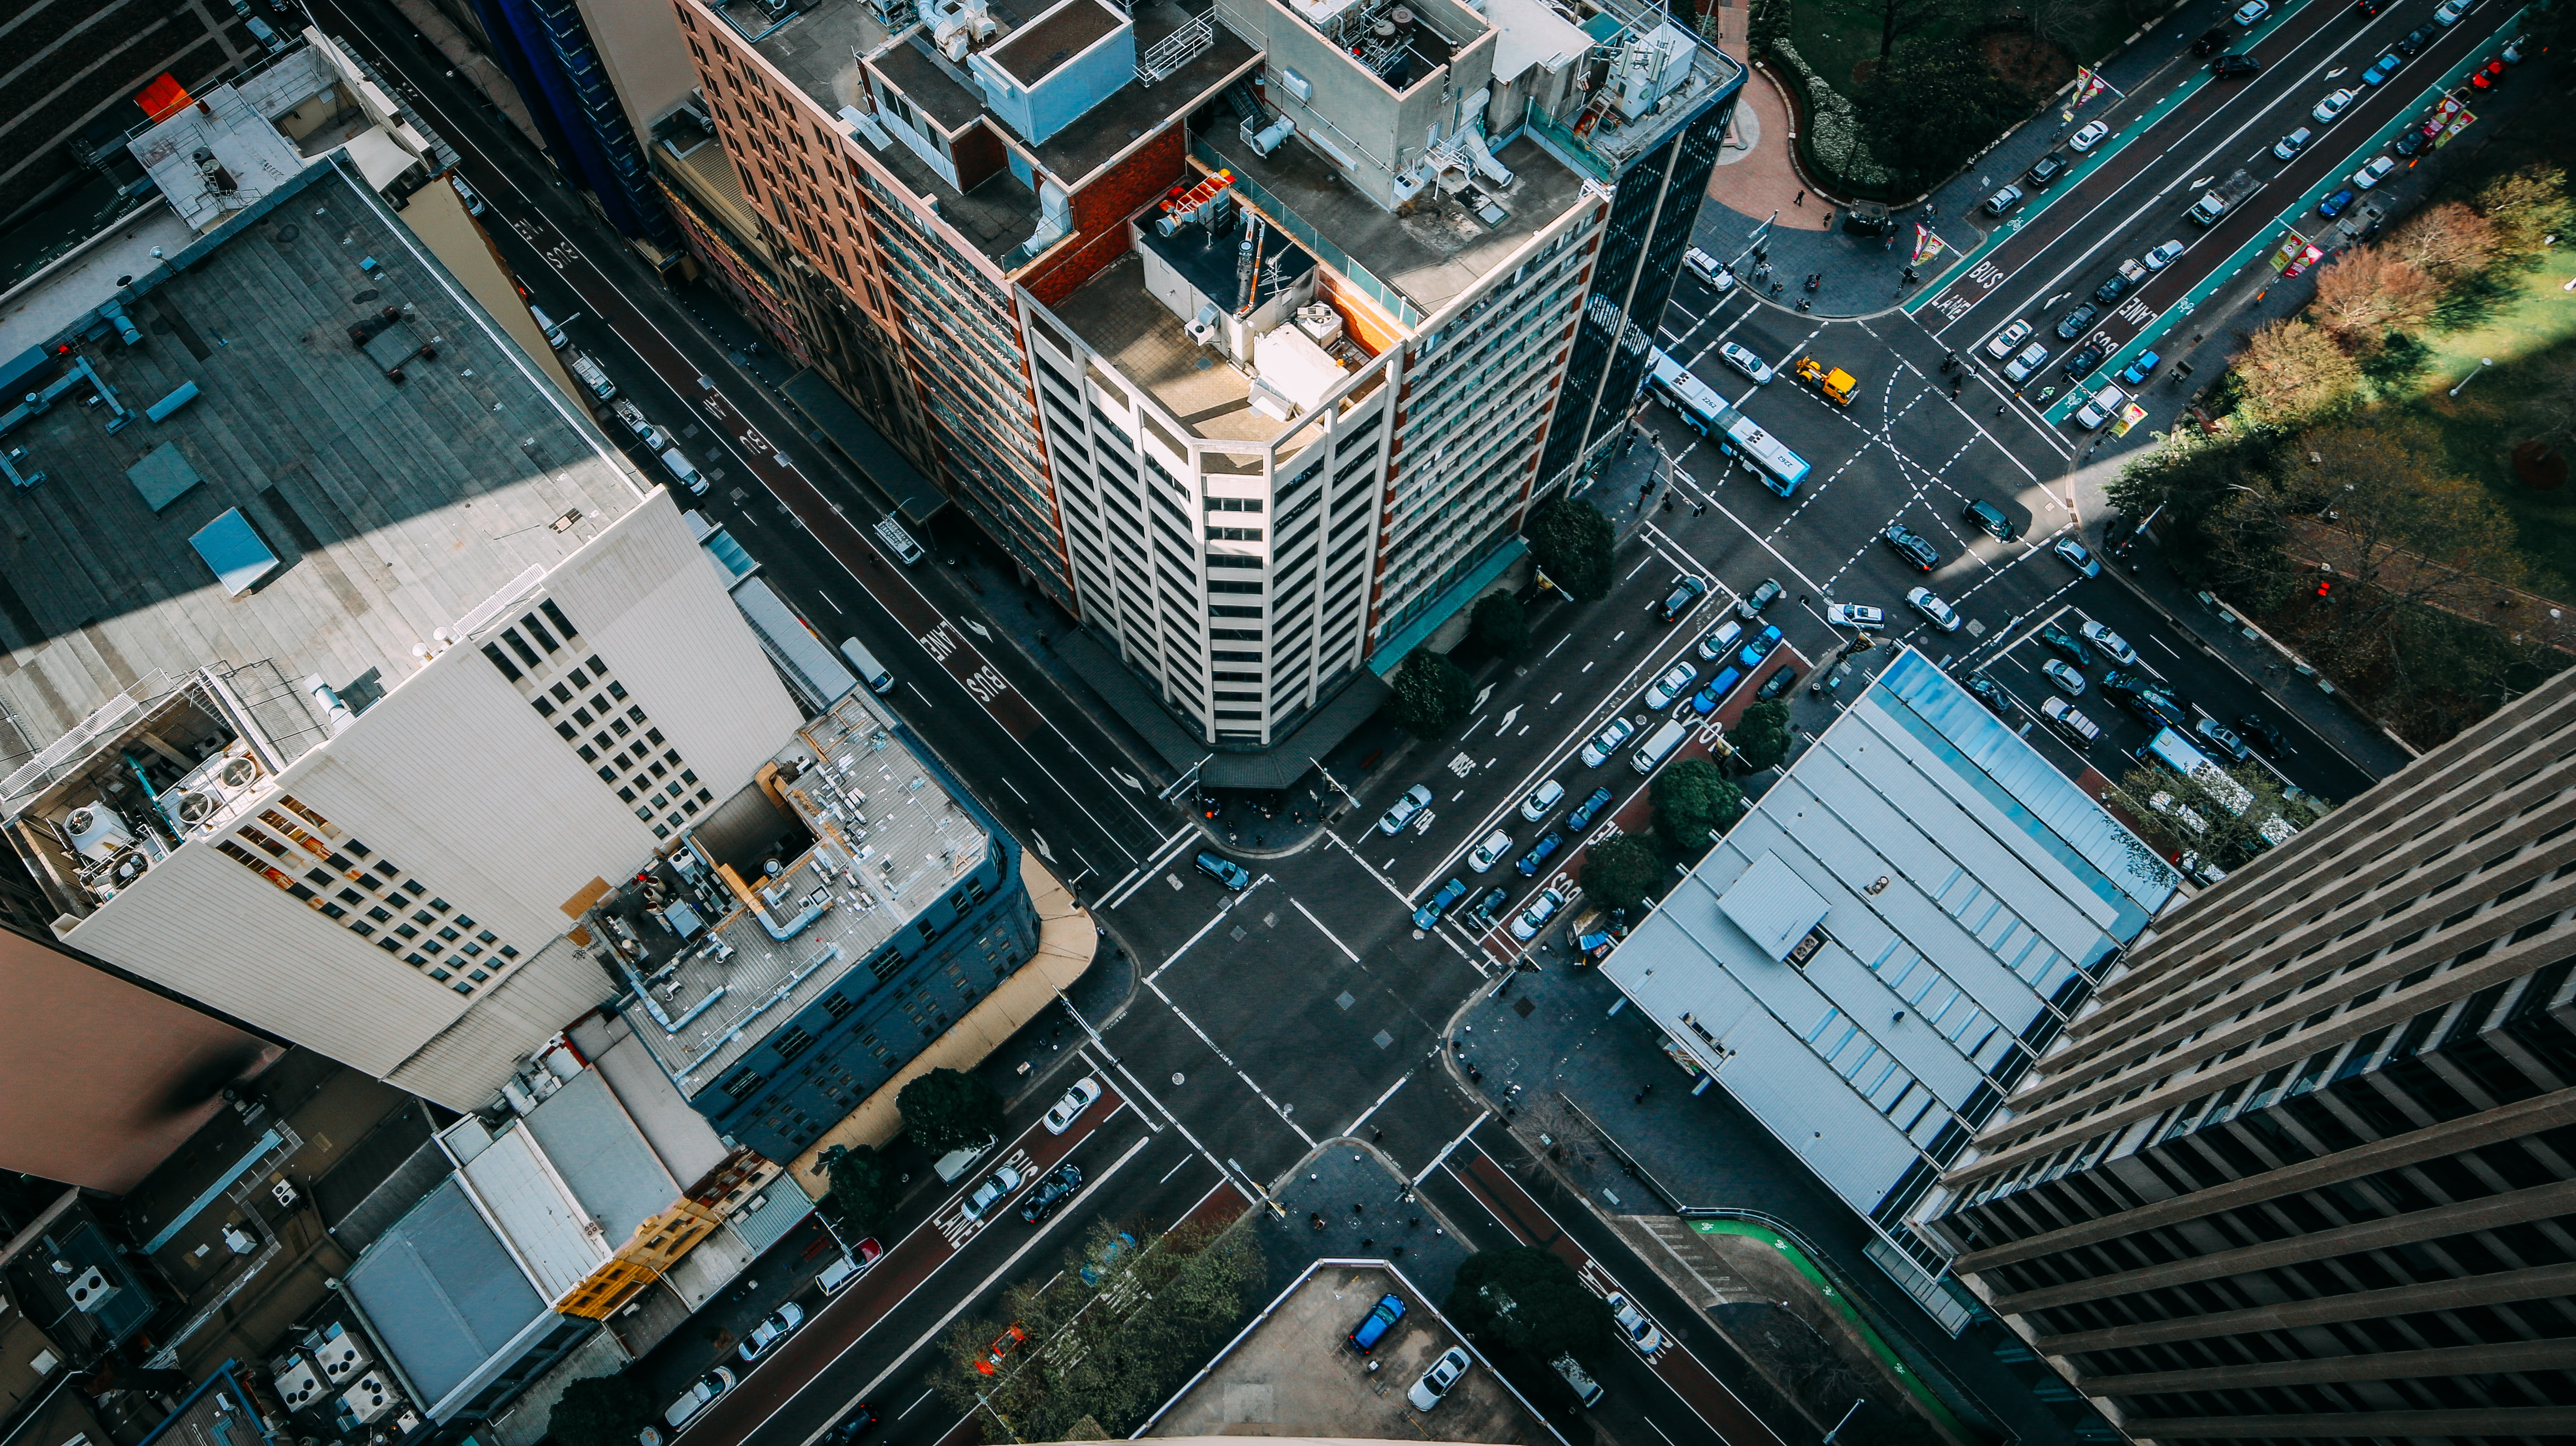 Drone shot of urban traffic crossroads and skyscraper rooftops daytime